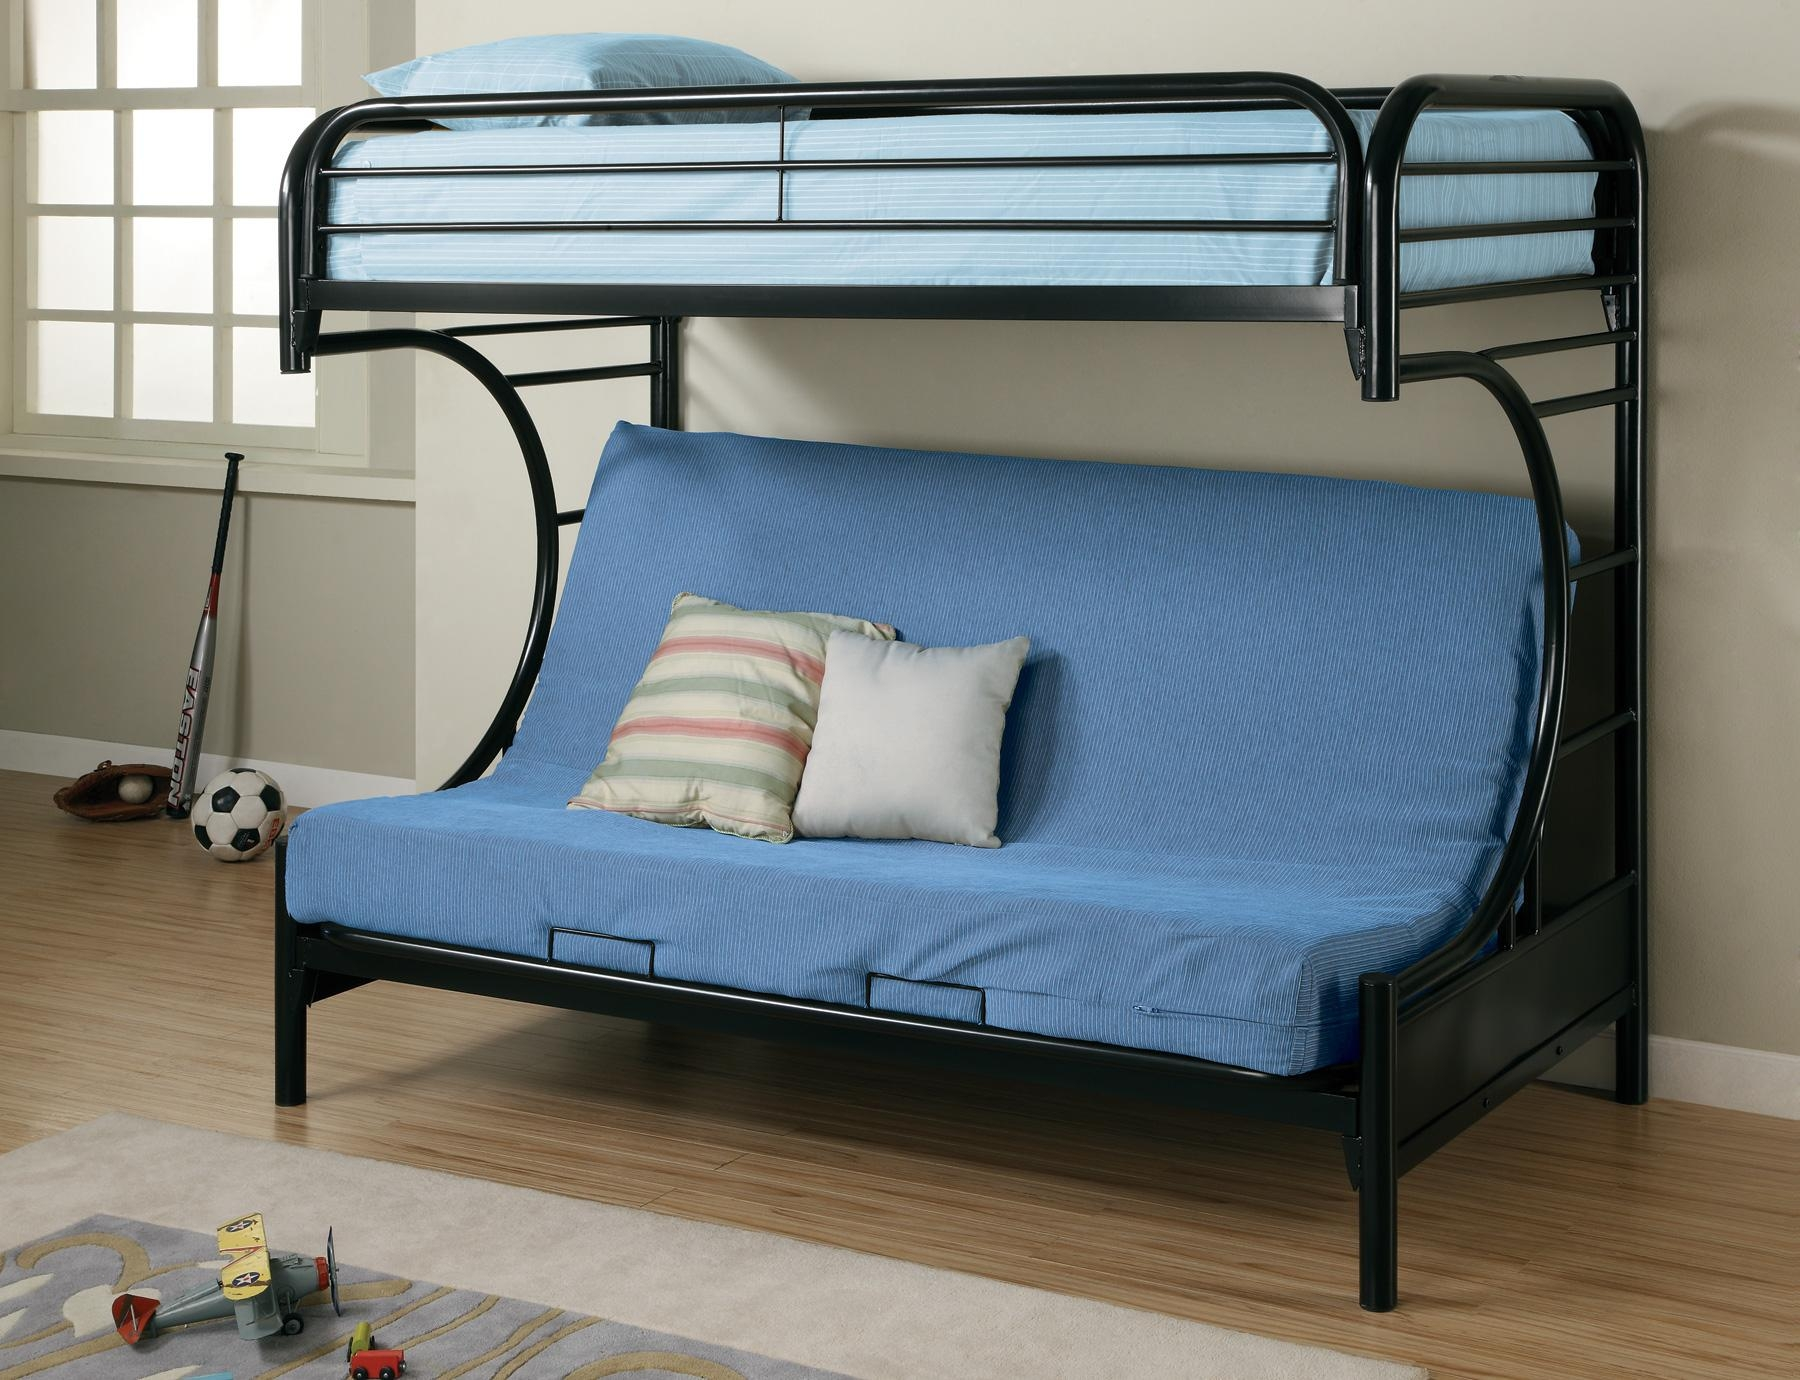 Convert Bunk Bed Couch — Mygreenatl Bunk Beds Pertaining To Sofas Converts To Bunk Bed (Image 10 of 20)